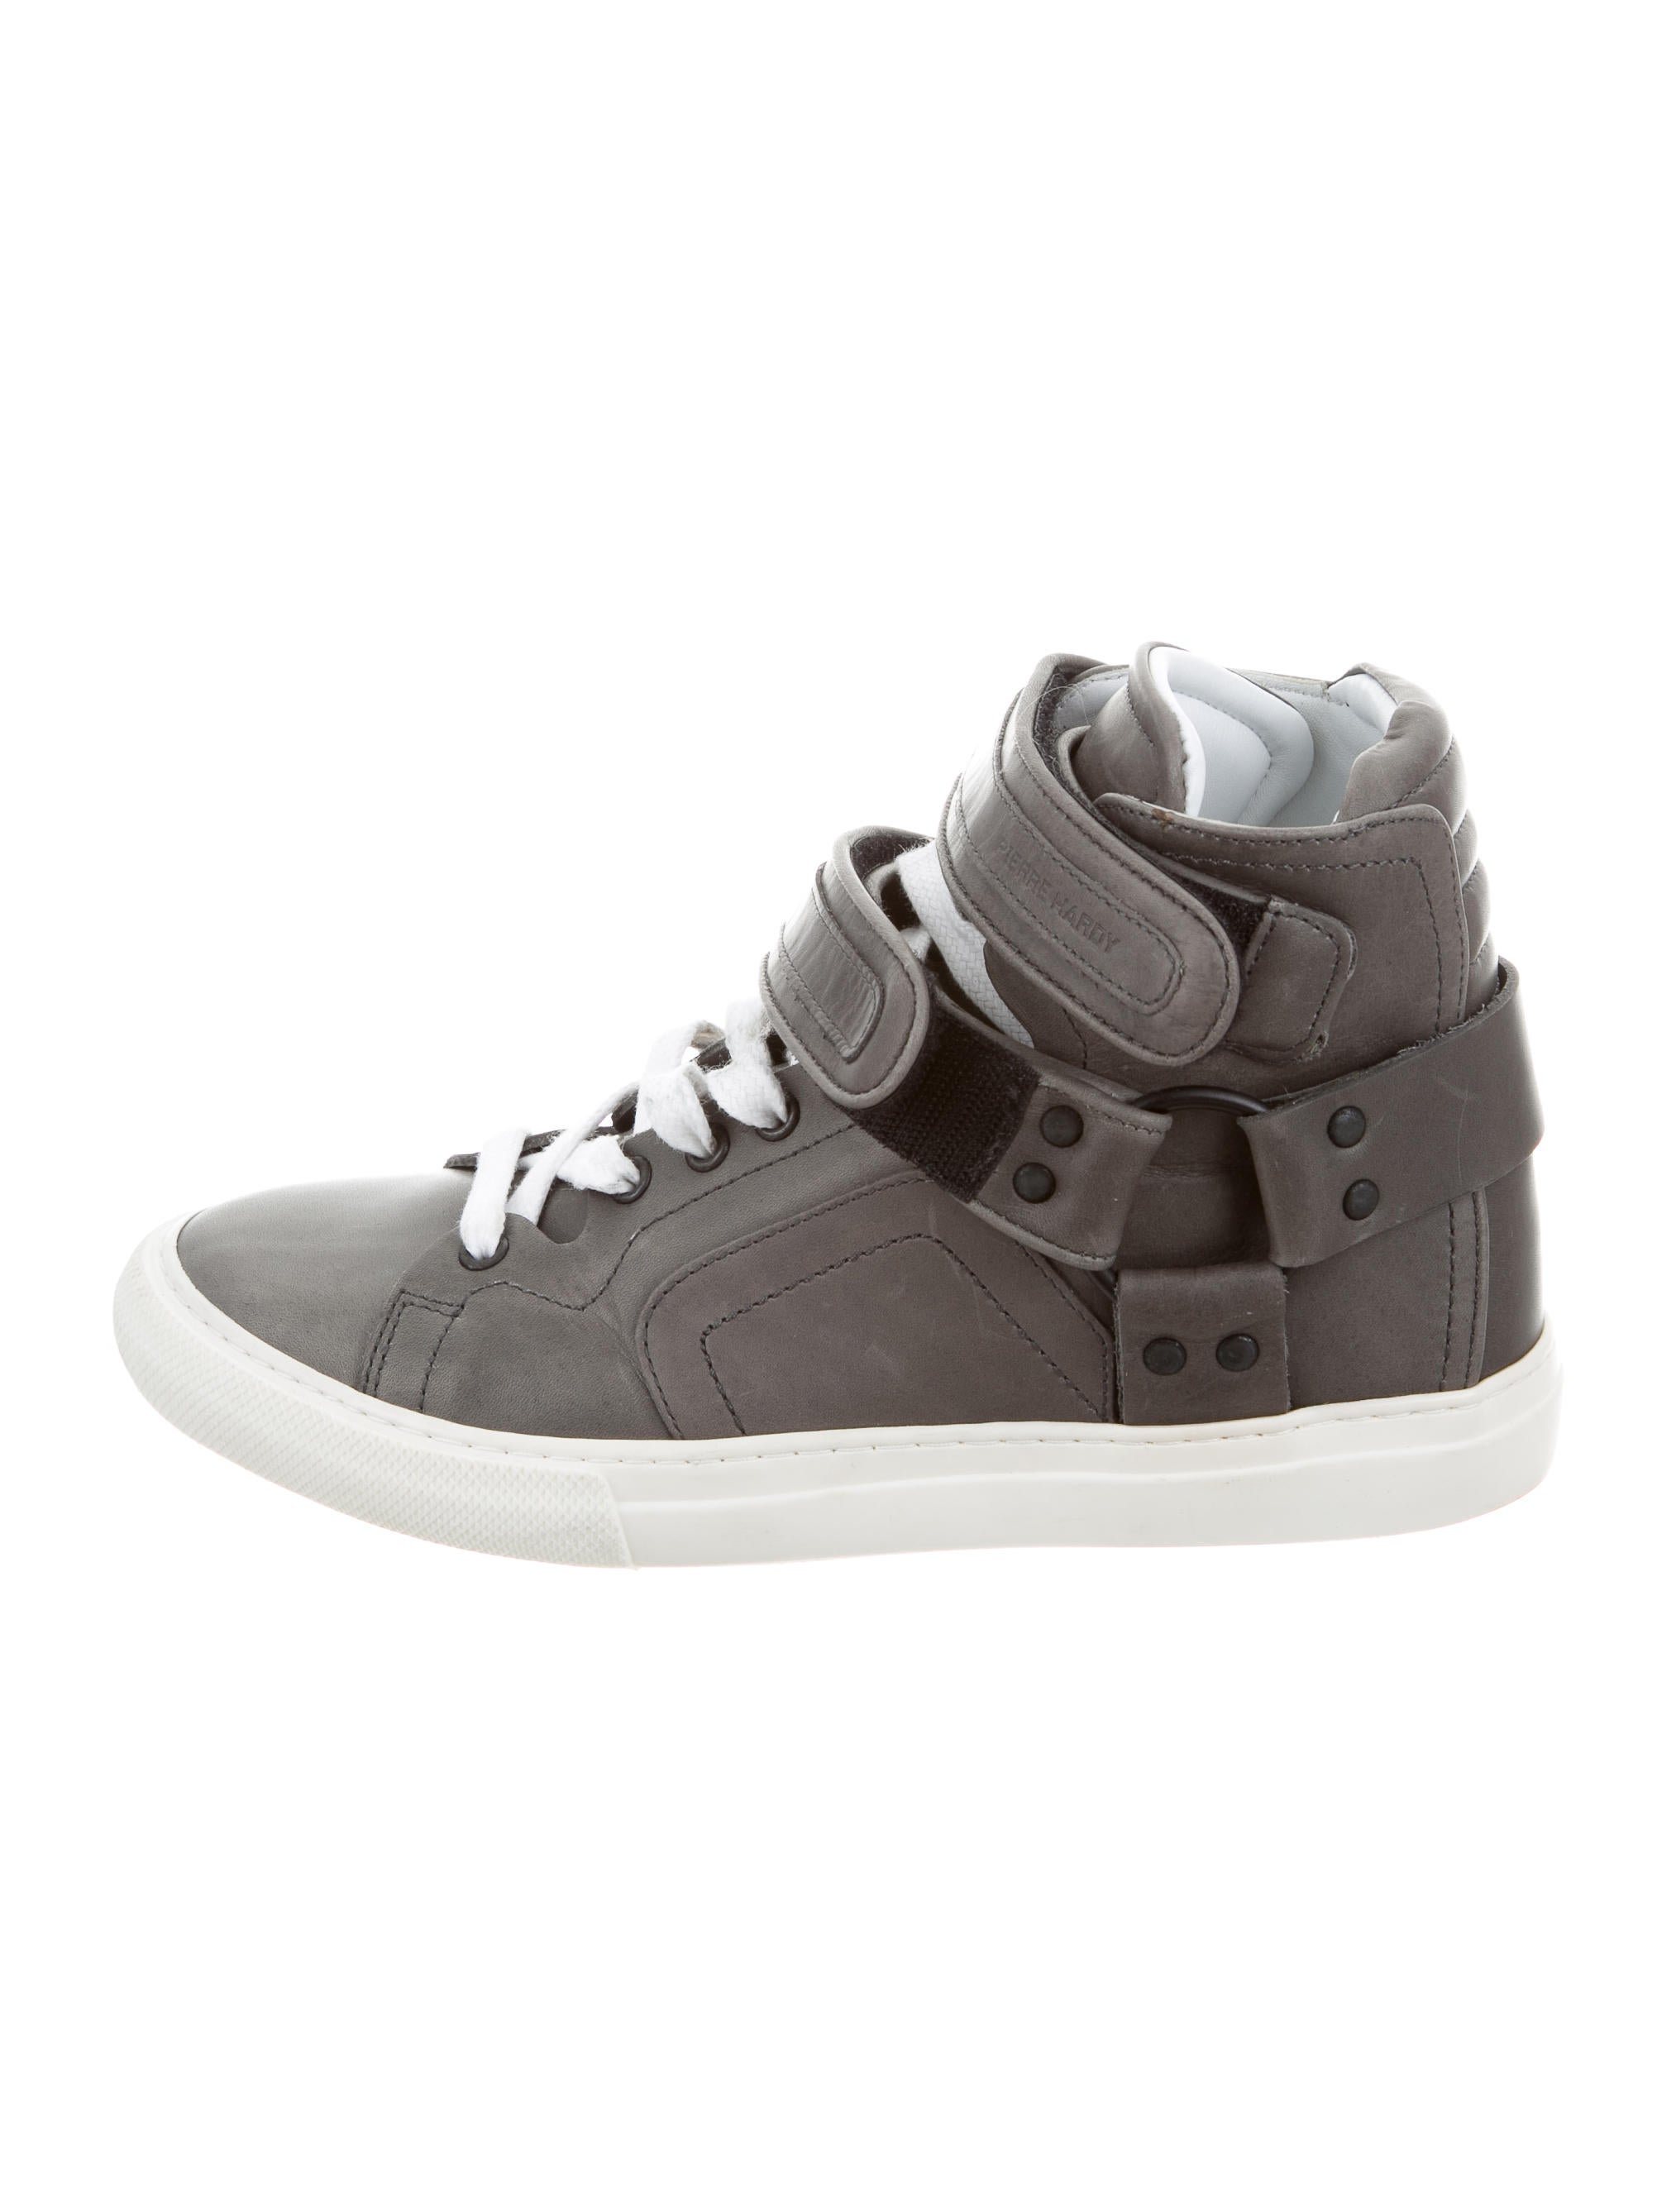 pierre hardy leather high top sneakers shoes pie24494 the realreal. Black Bedroom Furniture Sets. Home Design Ideas